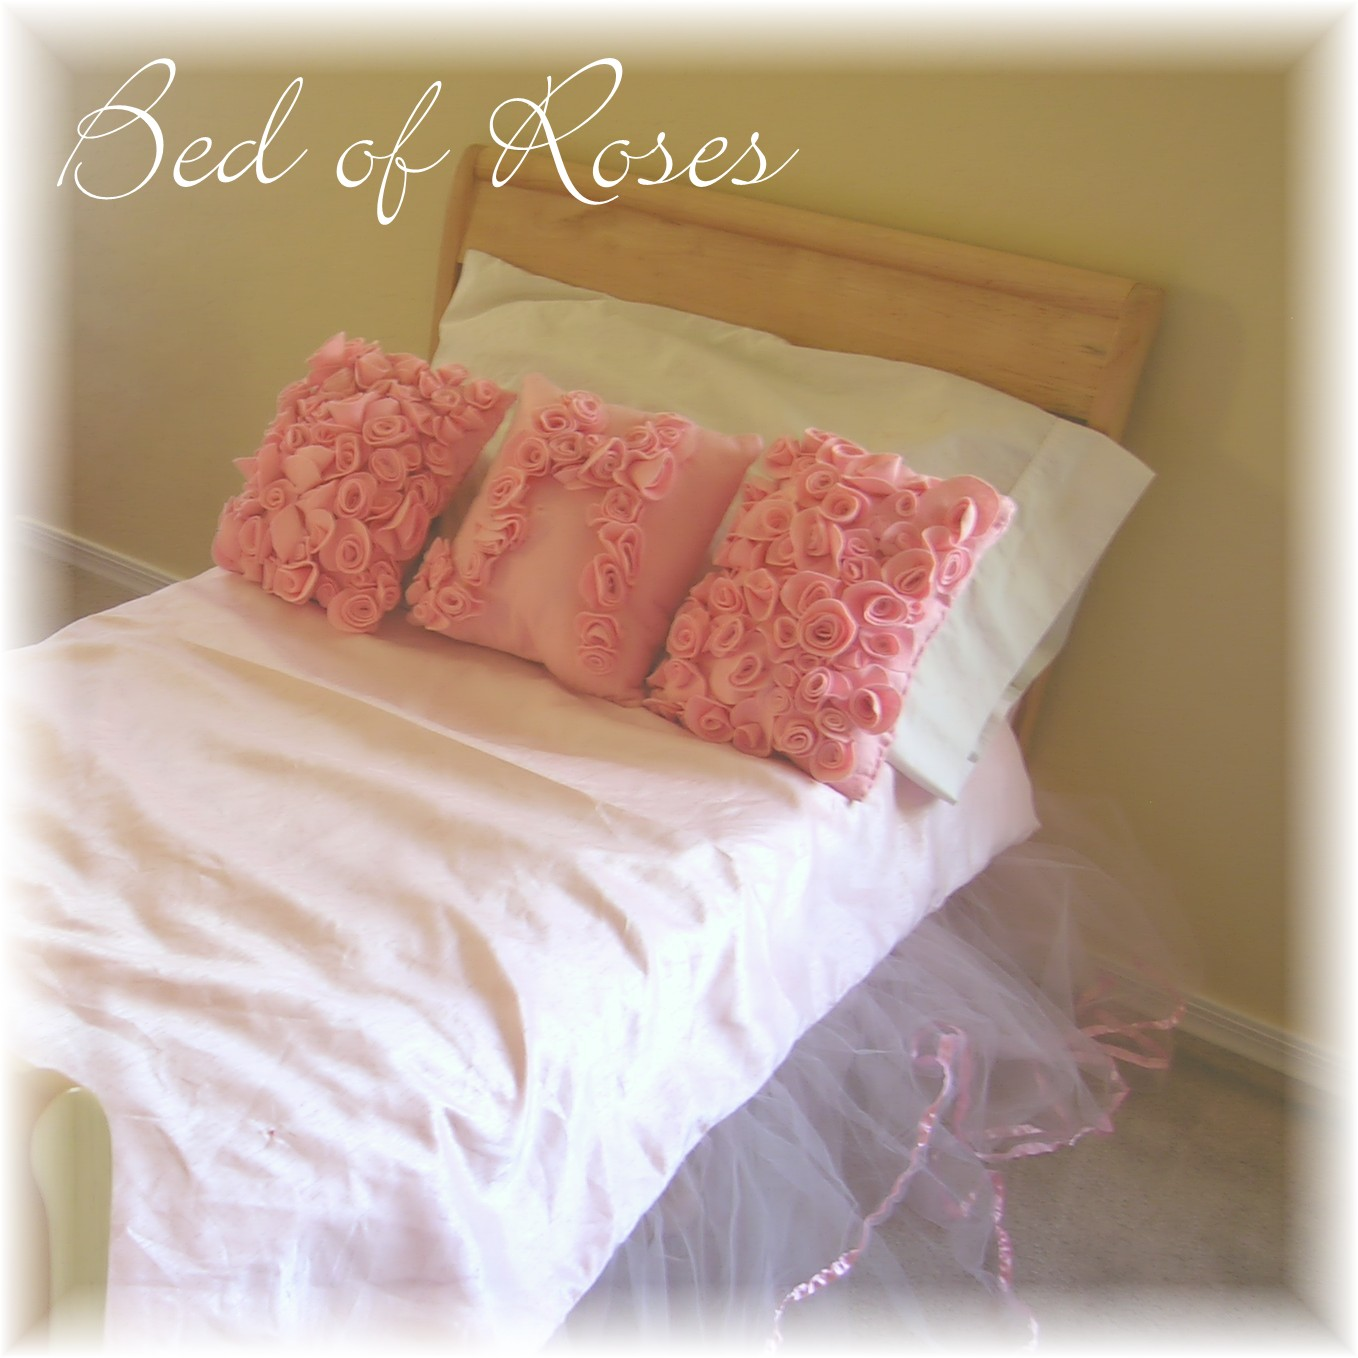 Bed With Roses